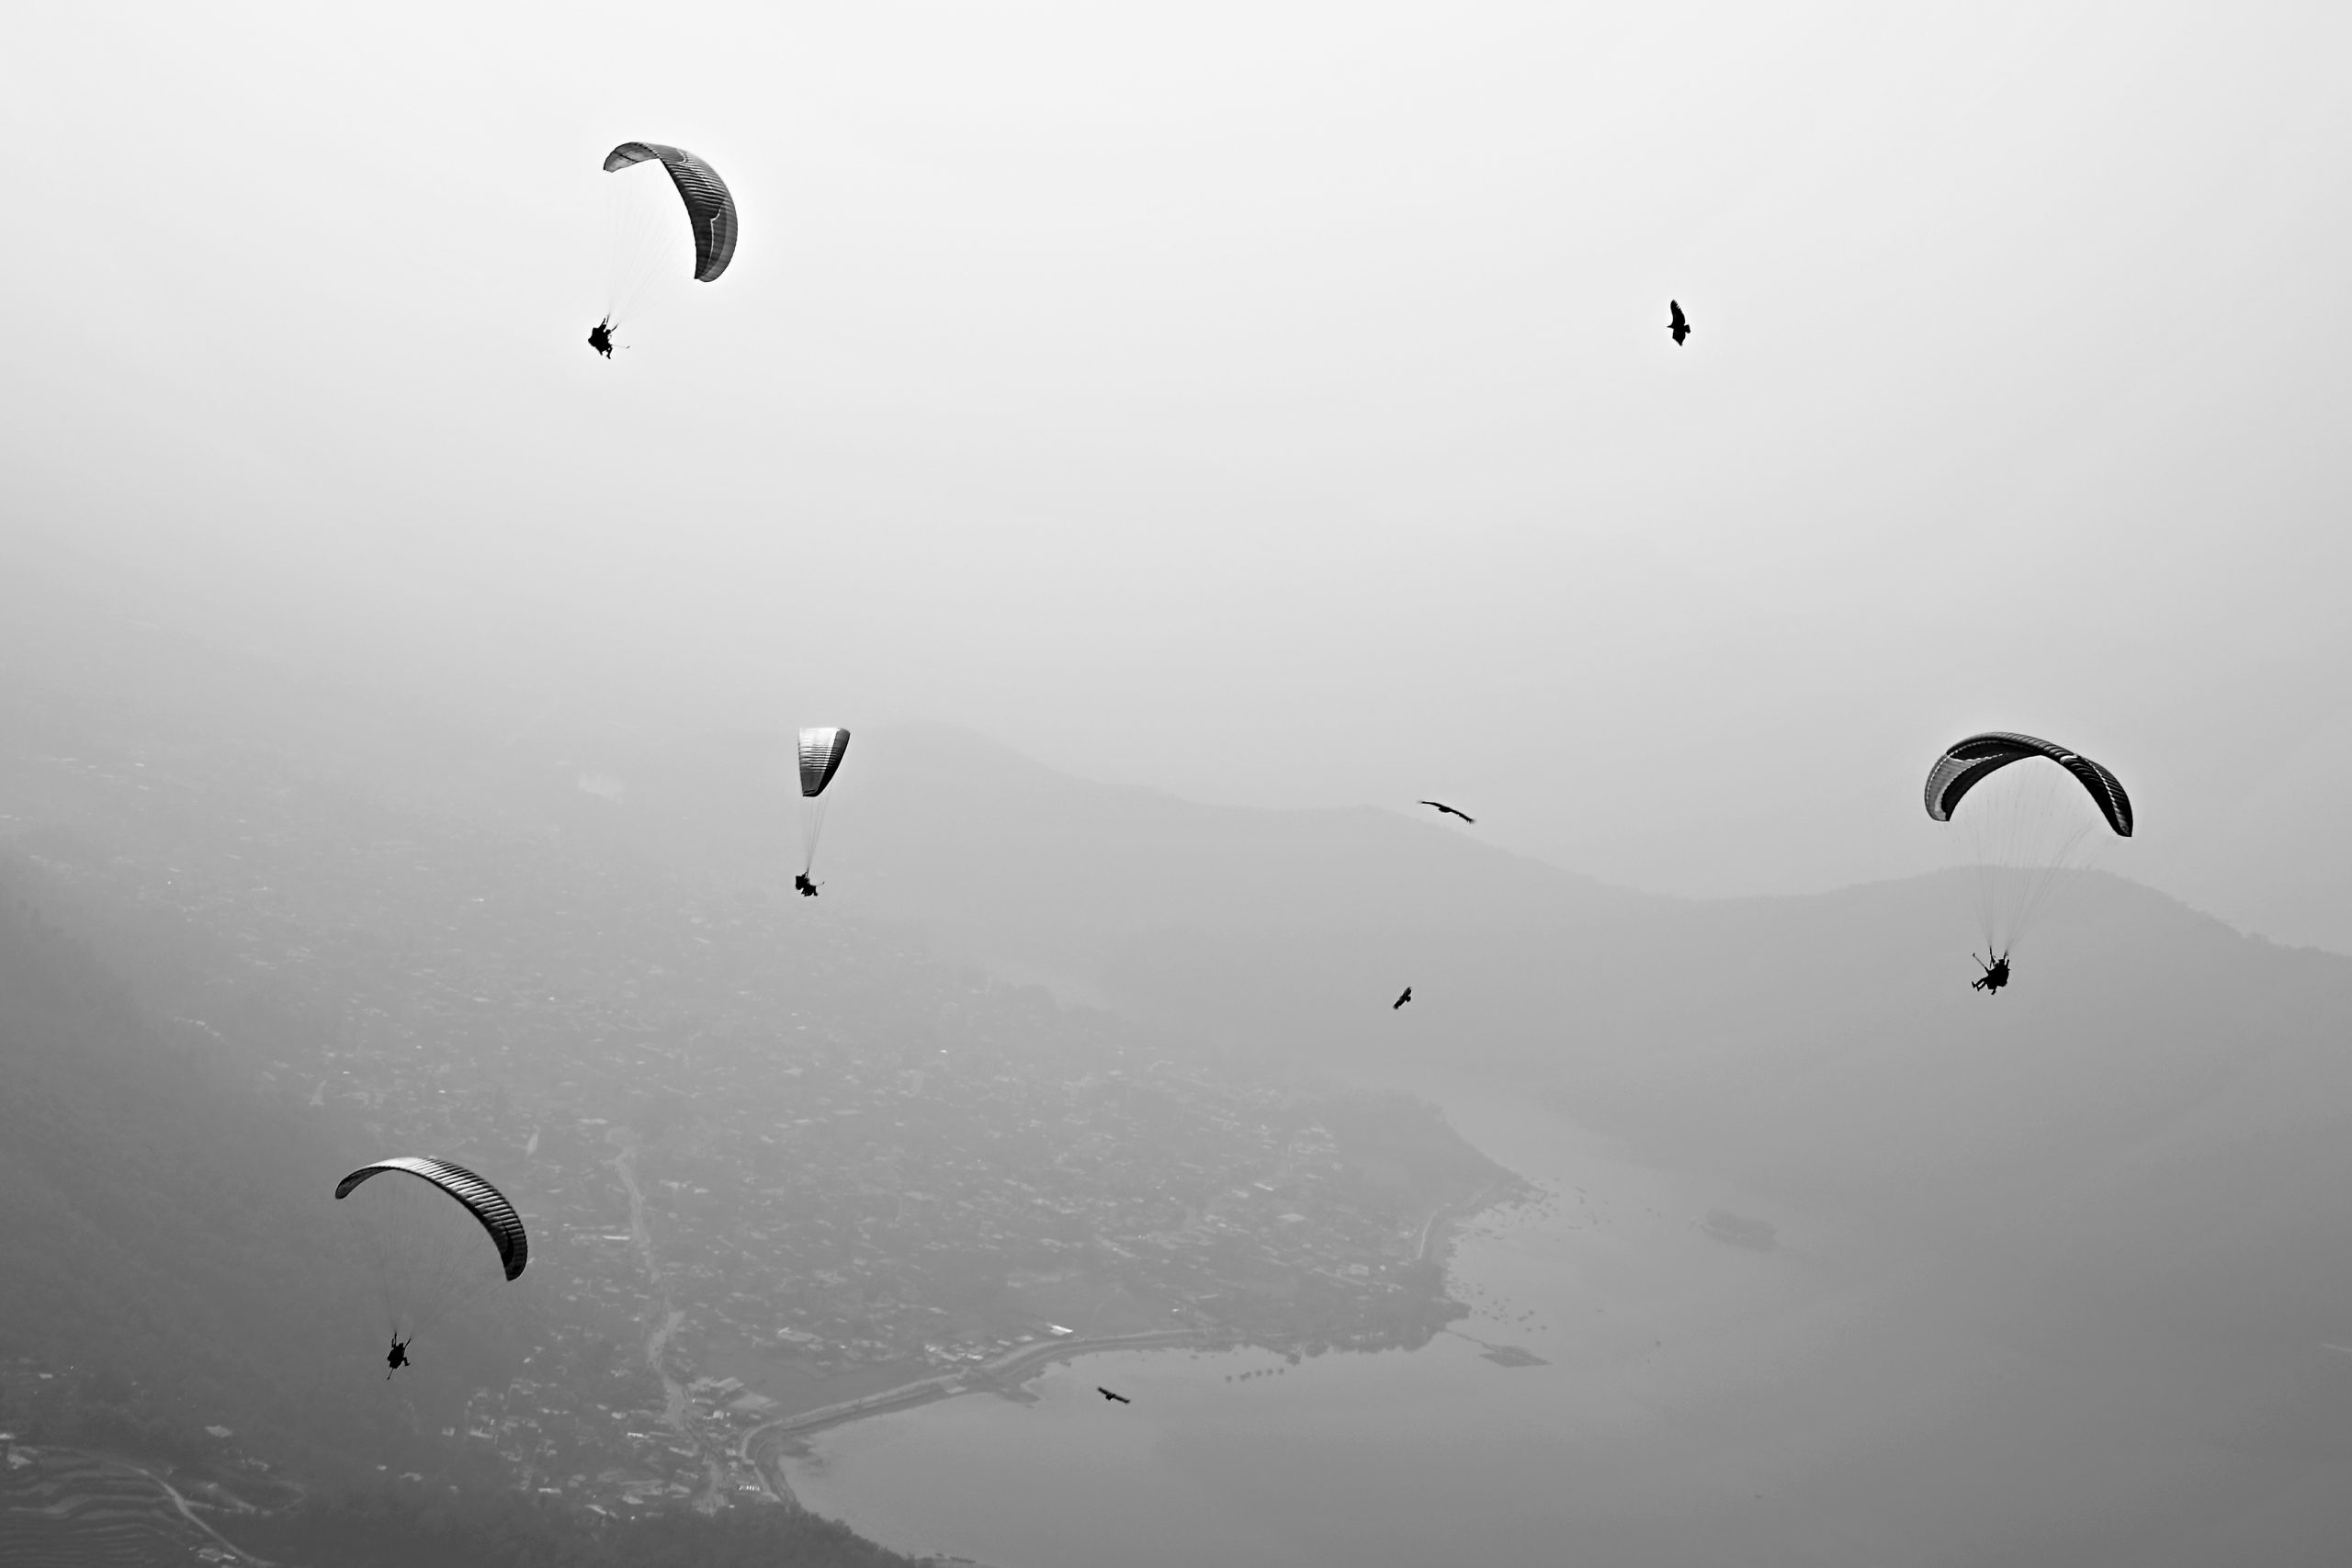 Several paragliders in the sky